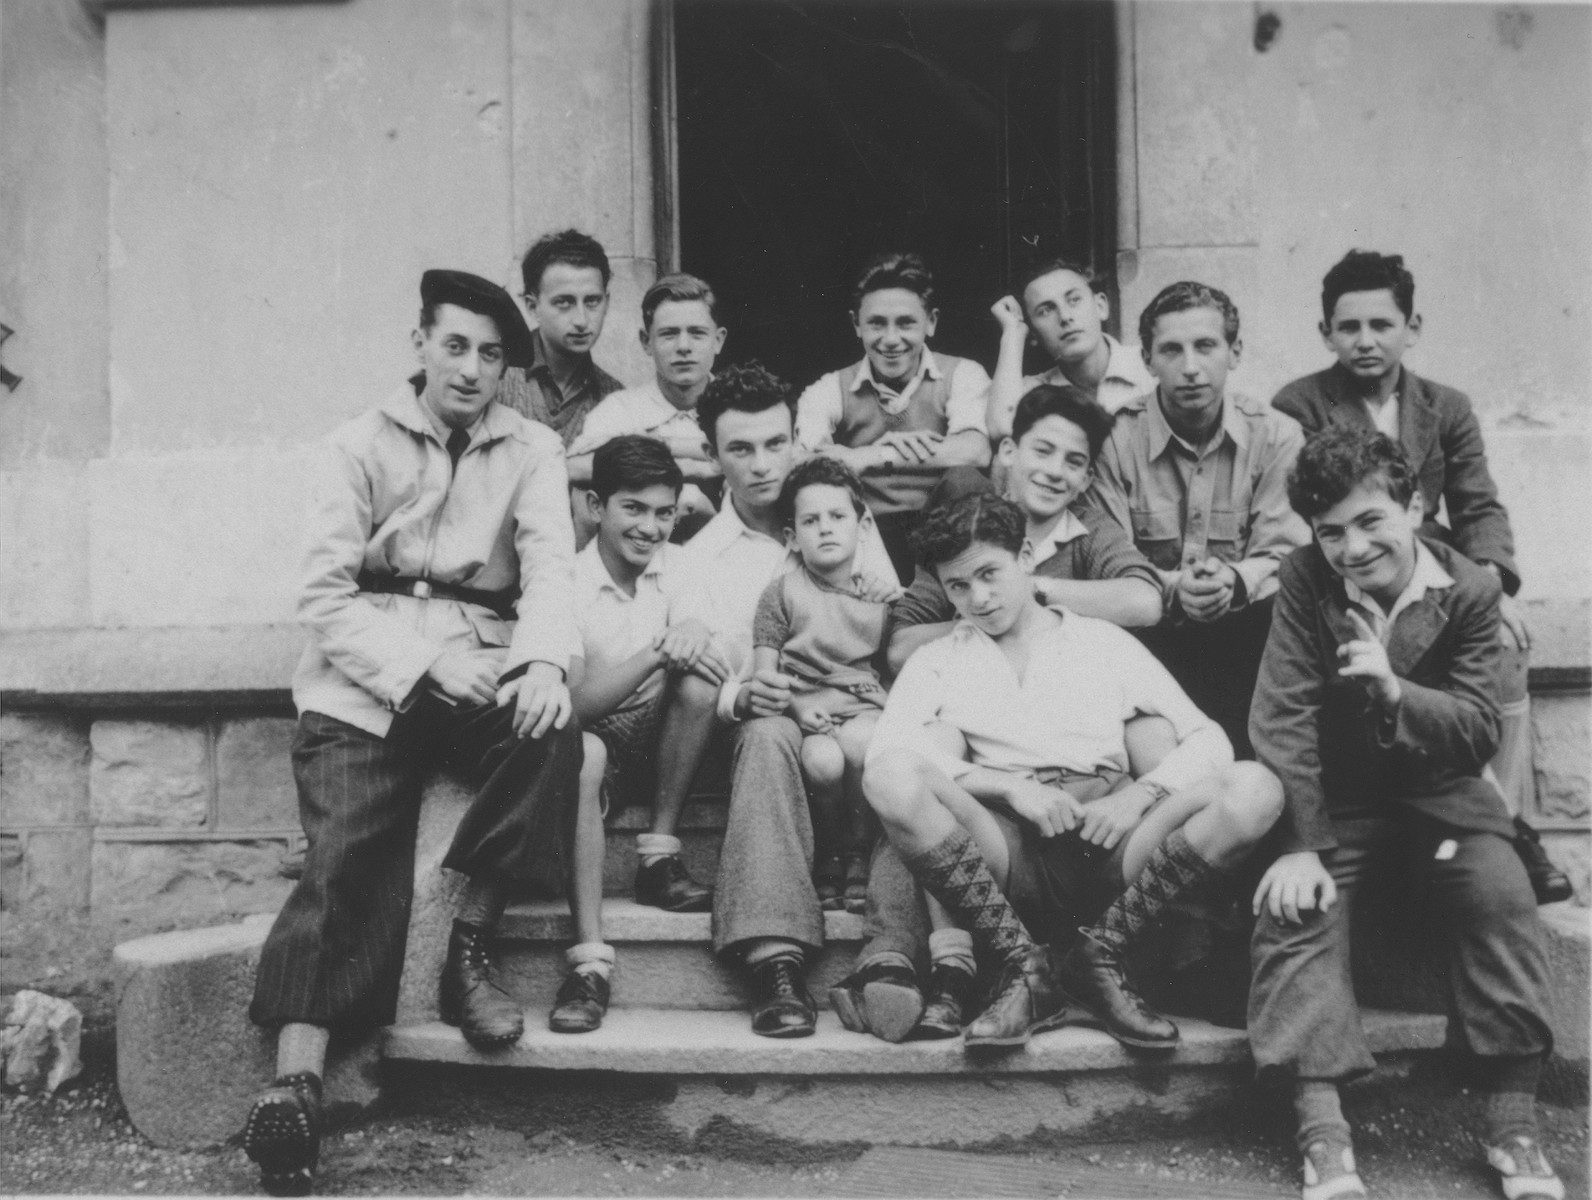 Group portrait of Jewish refugee boys in the Hôme de la Forêt, a children's home run by the OSE (Oeuvre de Secours aux Enfants) in Geneva, Switzerland.  Among those pictured are Gilles Segal and Norbert Bikales.